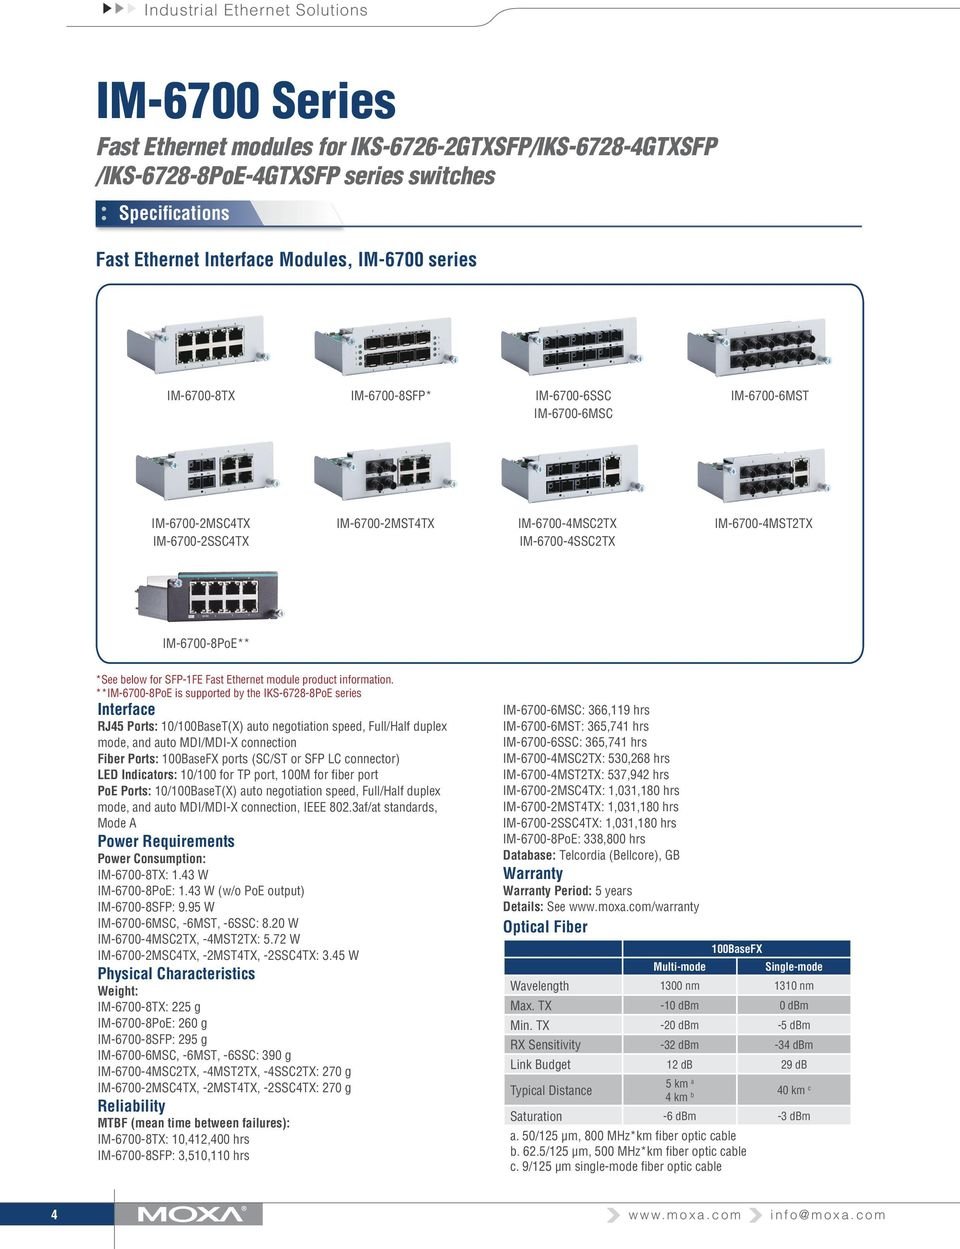 Ethernet module product information.